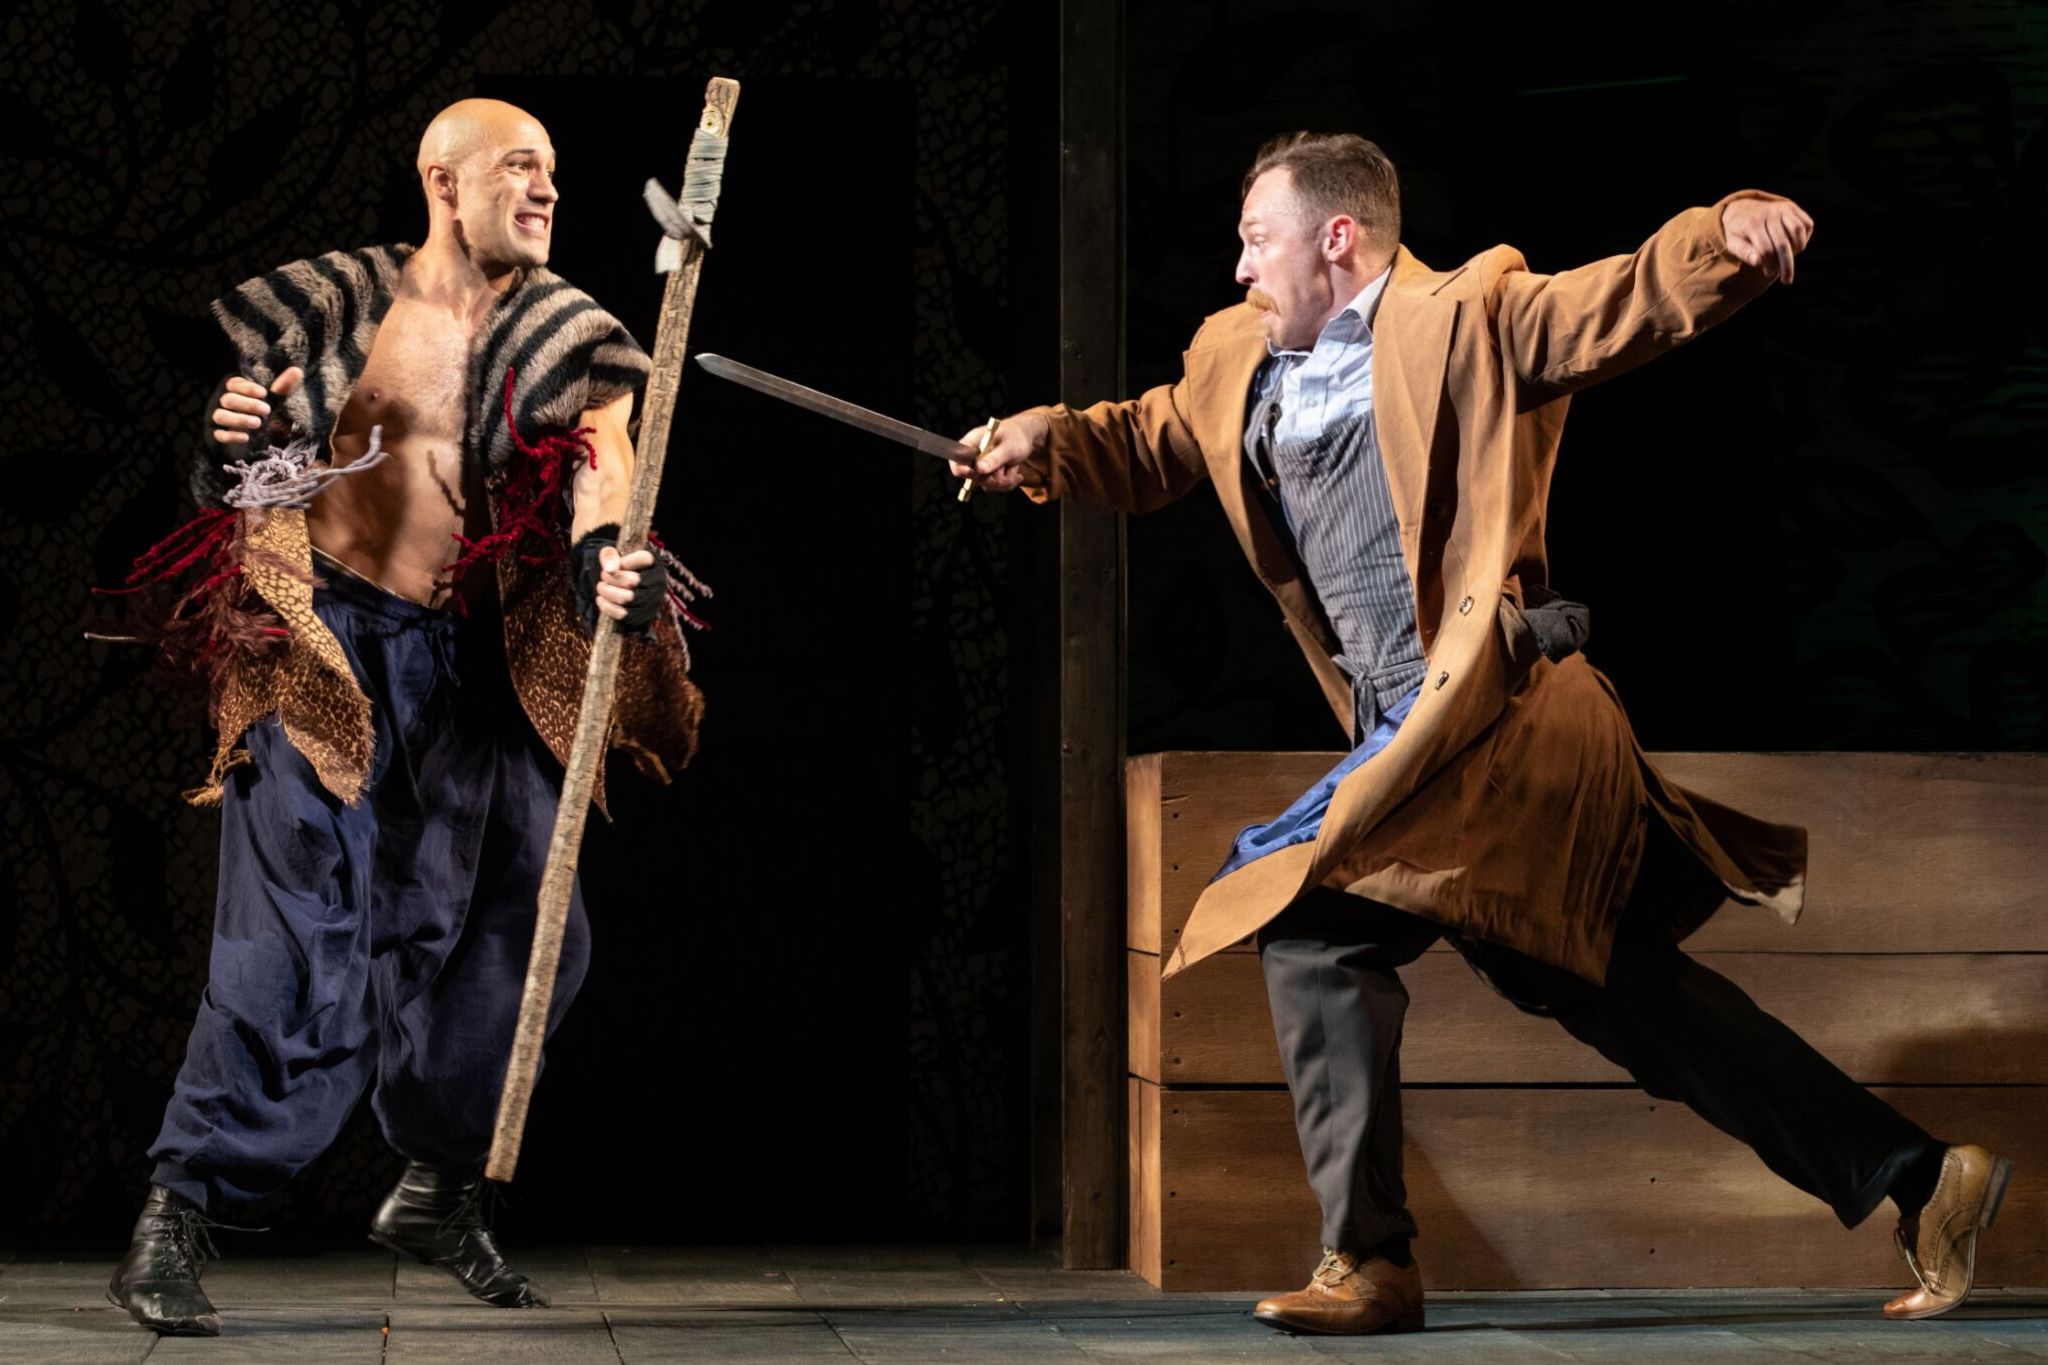 Jonathan Higginbotham (Guiderius), and Kelby Akin (Cloten) in Cymbeline, Shakespeare on the Common 2019-Photo by Evgenia Eliseeva